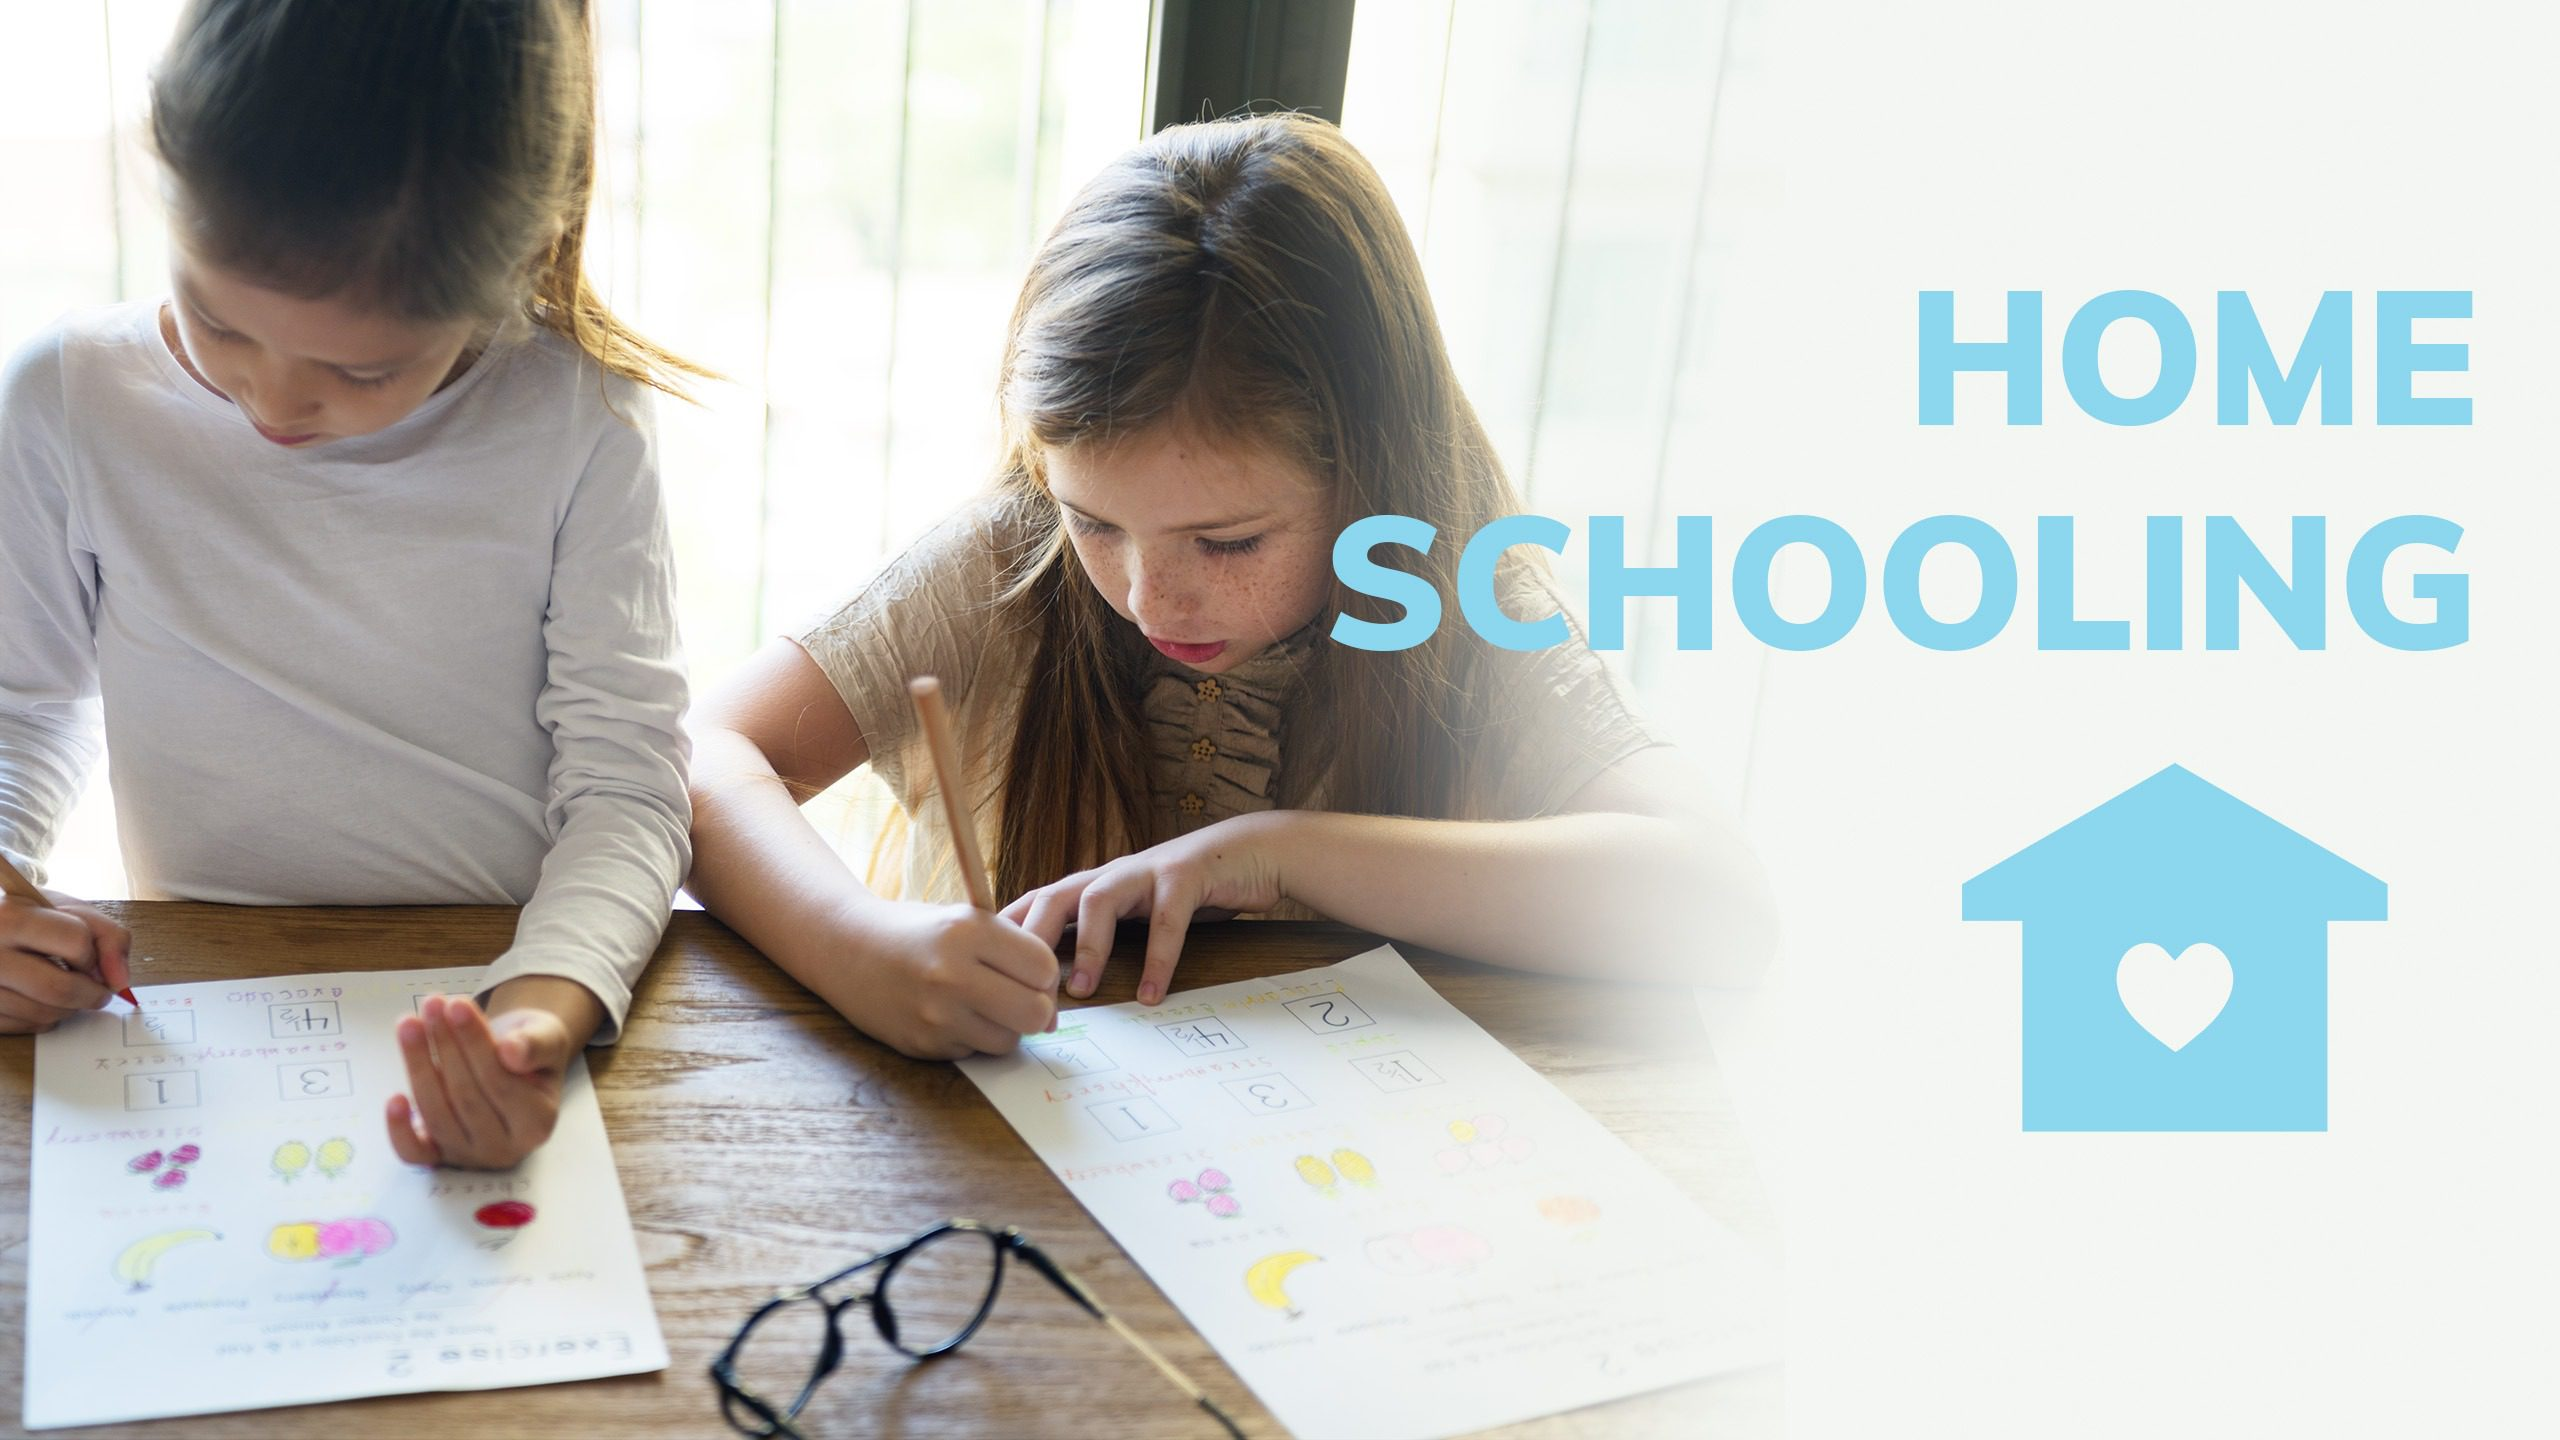 Five Signs That You Need to Home School Your Child